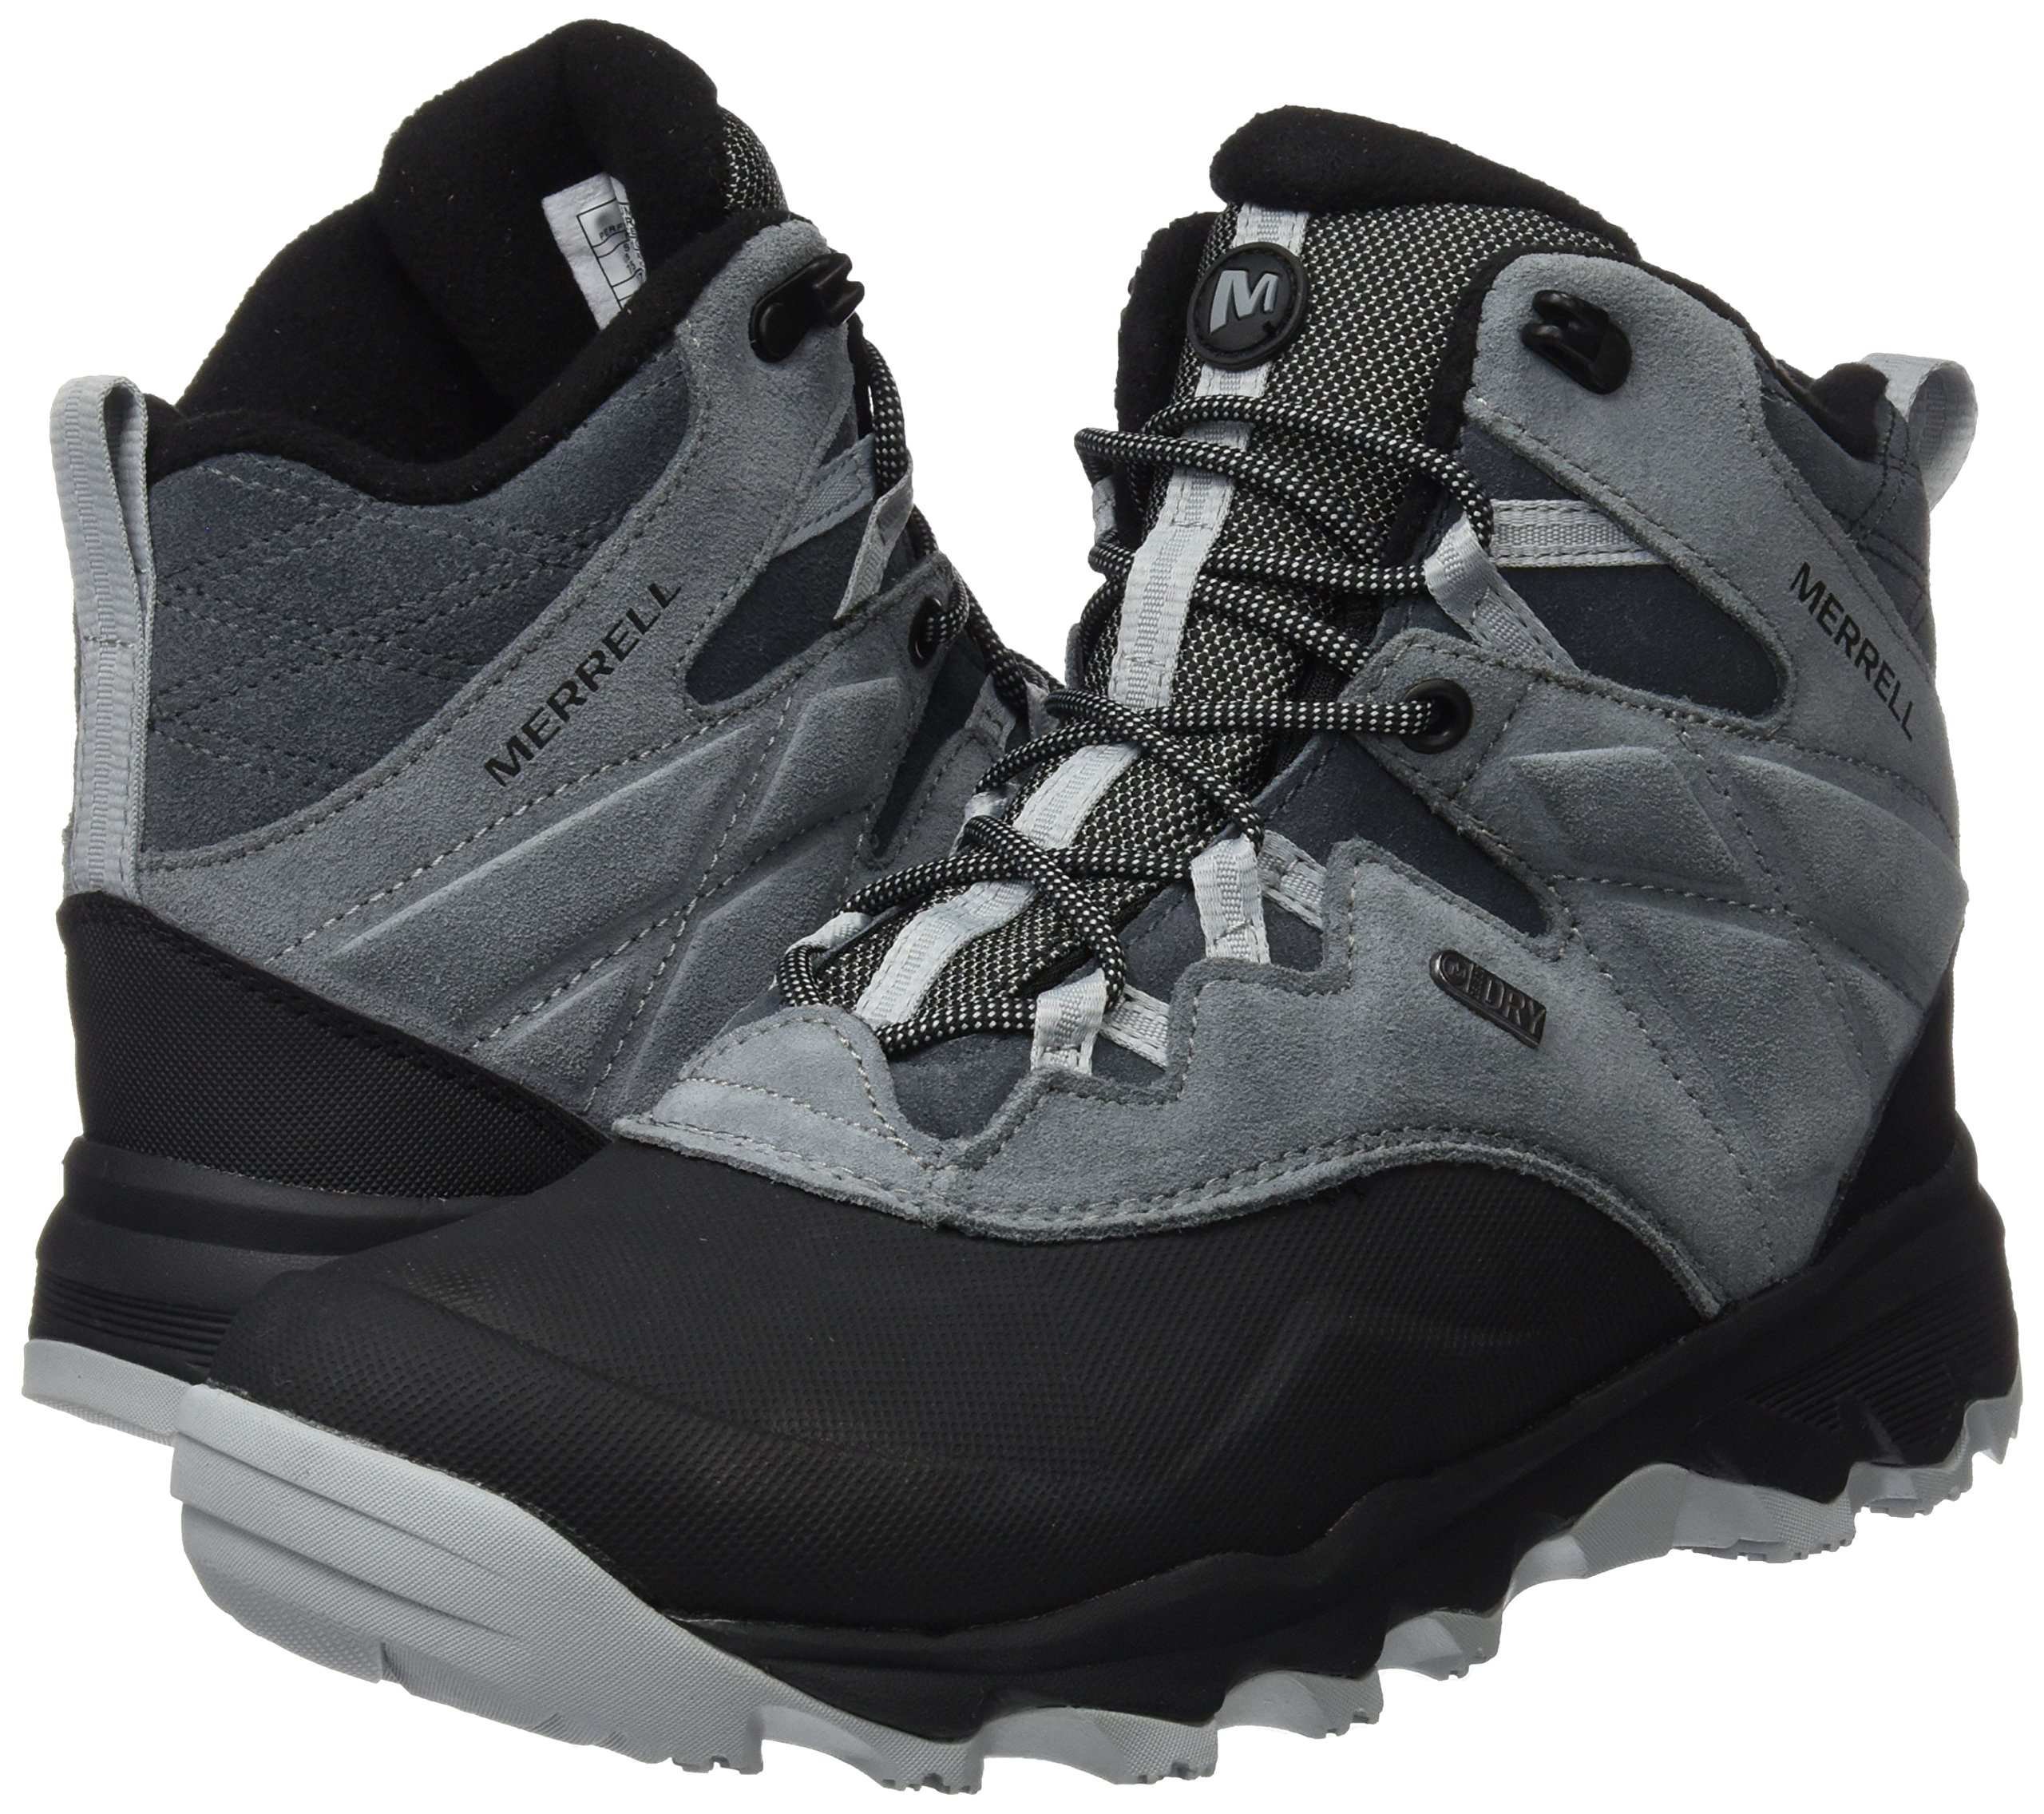 """91WqLpNXIsL - Merrell Men's Thermo Shiver 6"""" Waterproof High Rise Hiking Boots"""